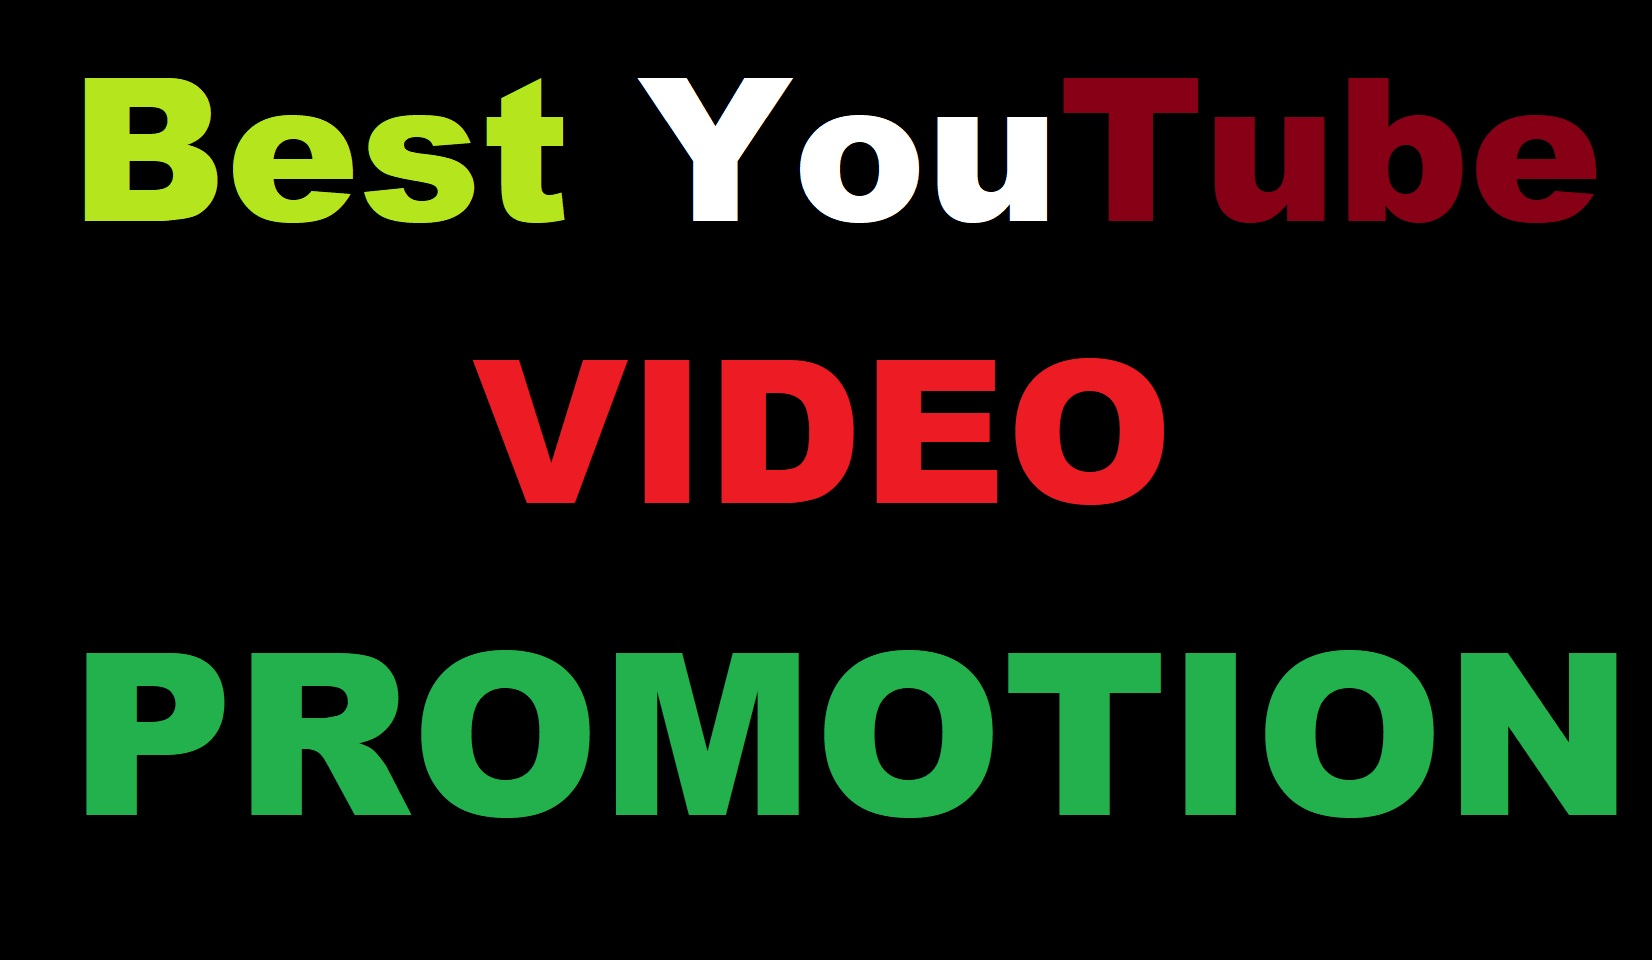 Get The Best YouTube Video Marketing Promotion Package The Right Way